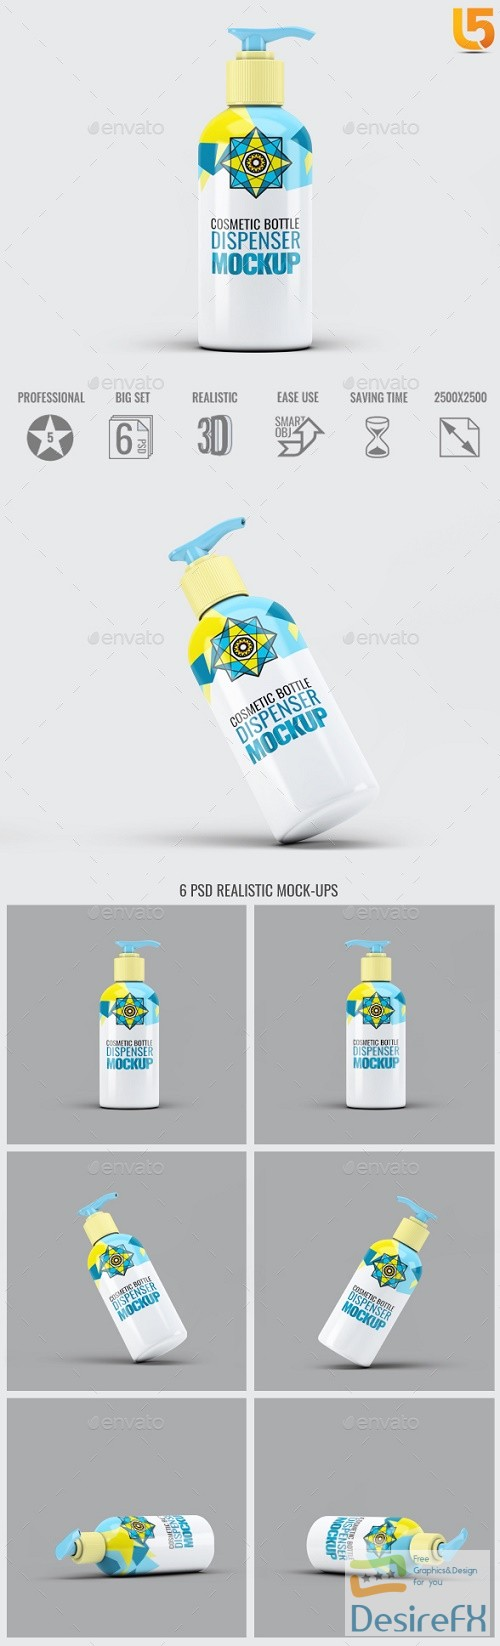 mock-up - Cosmetic Bottle Dispenser Mock-Up V.4 - 20590295